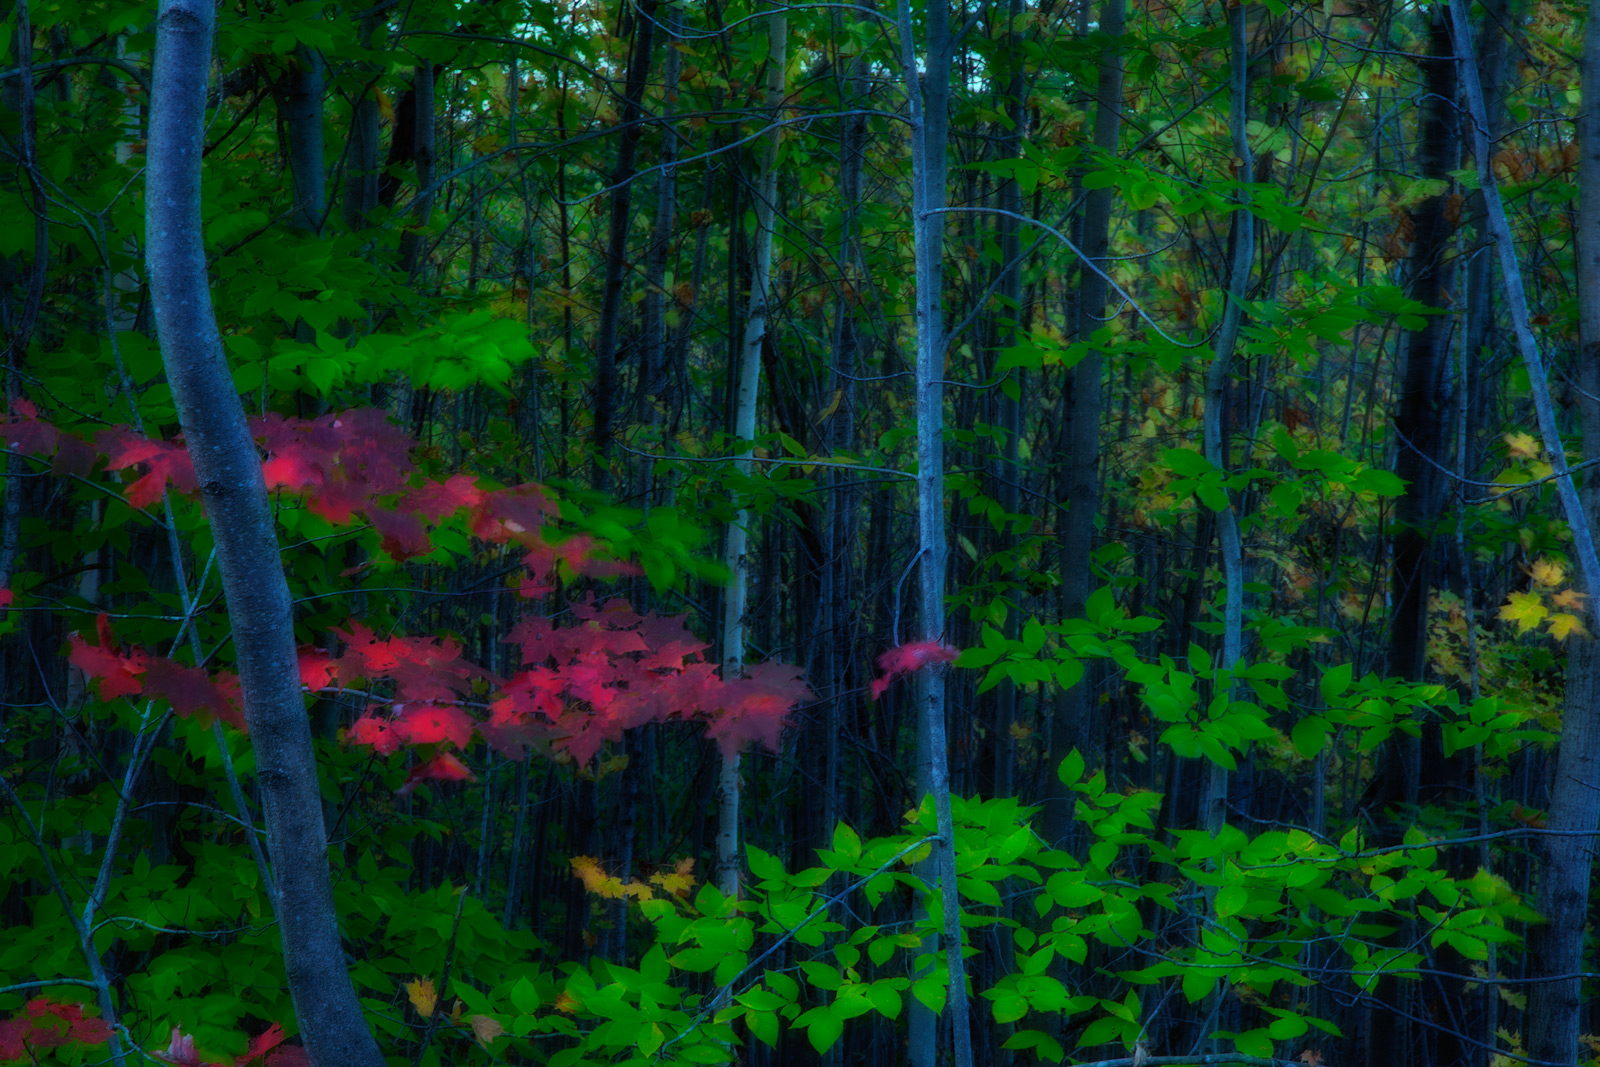 america,east,eastern,forest,green,horizontal,new england,north america,red,tree,united states,us,usa,vermont,woods, photo